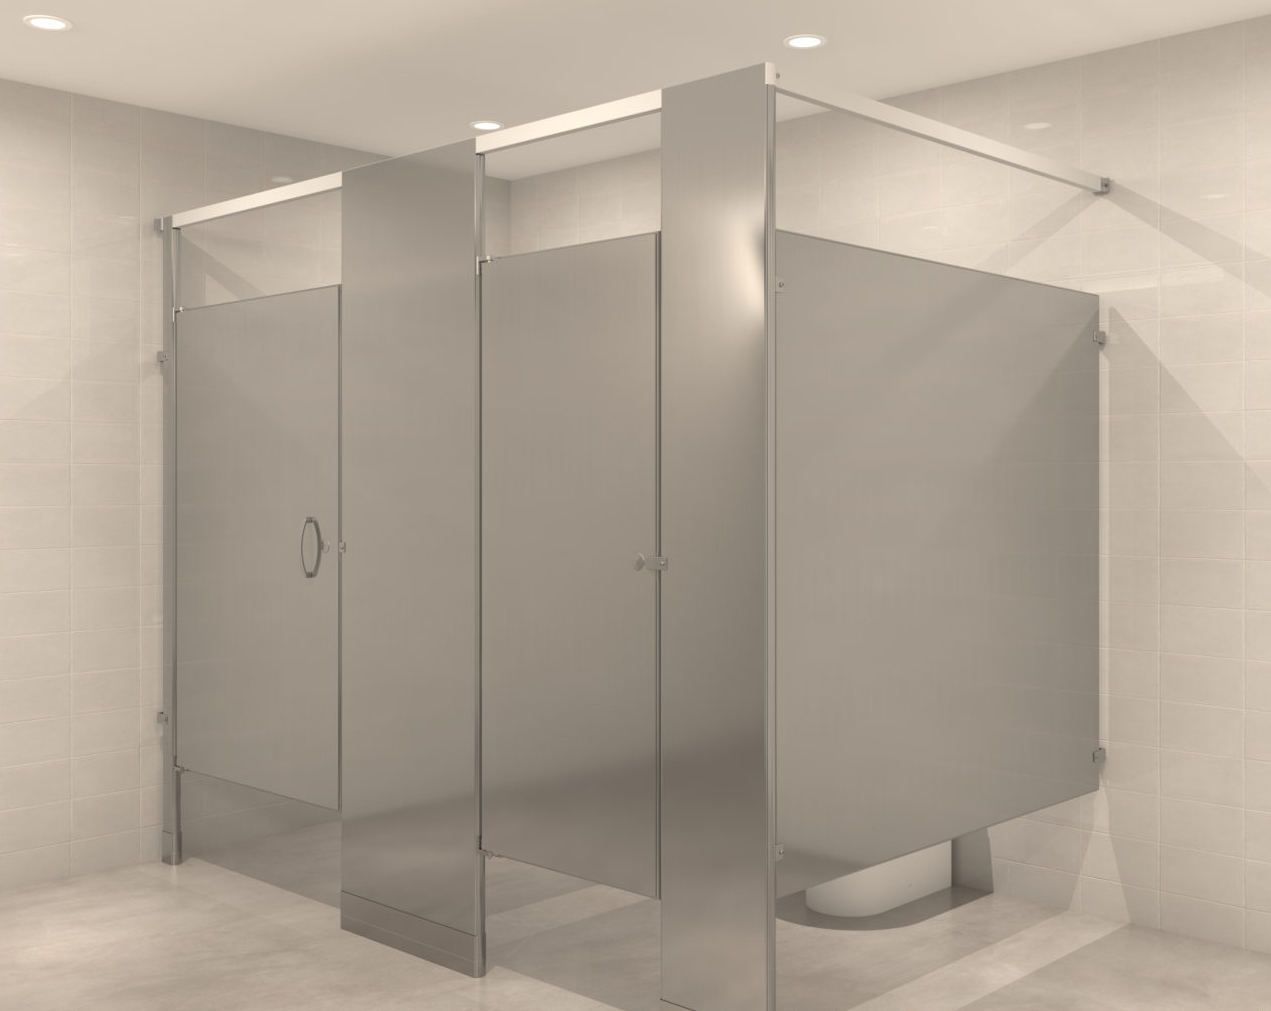 Stainless Steel Toilet Partitions, Stainless Steel Bathroom